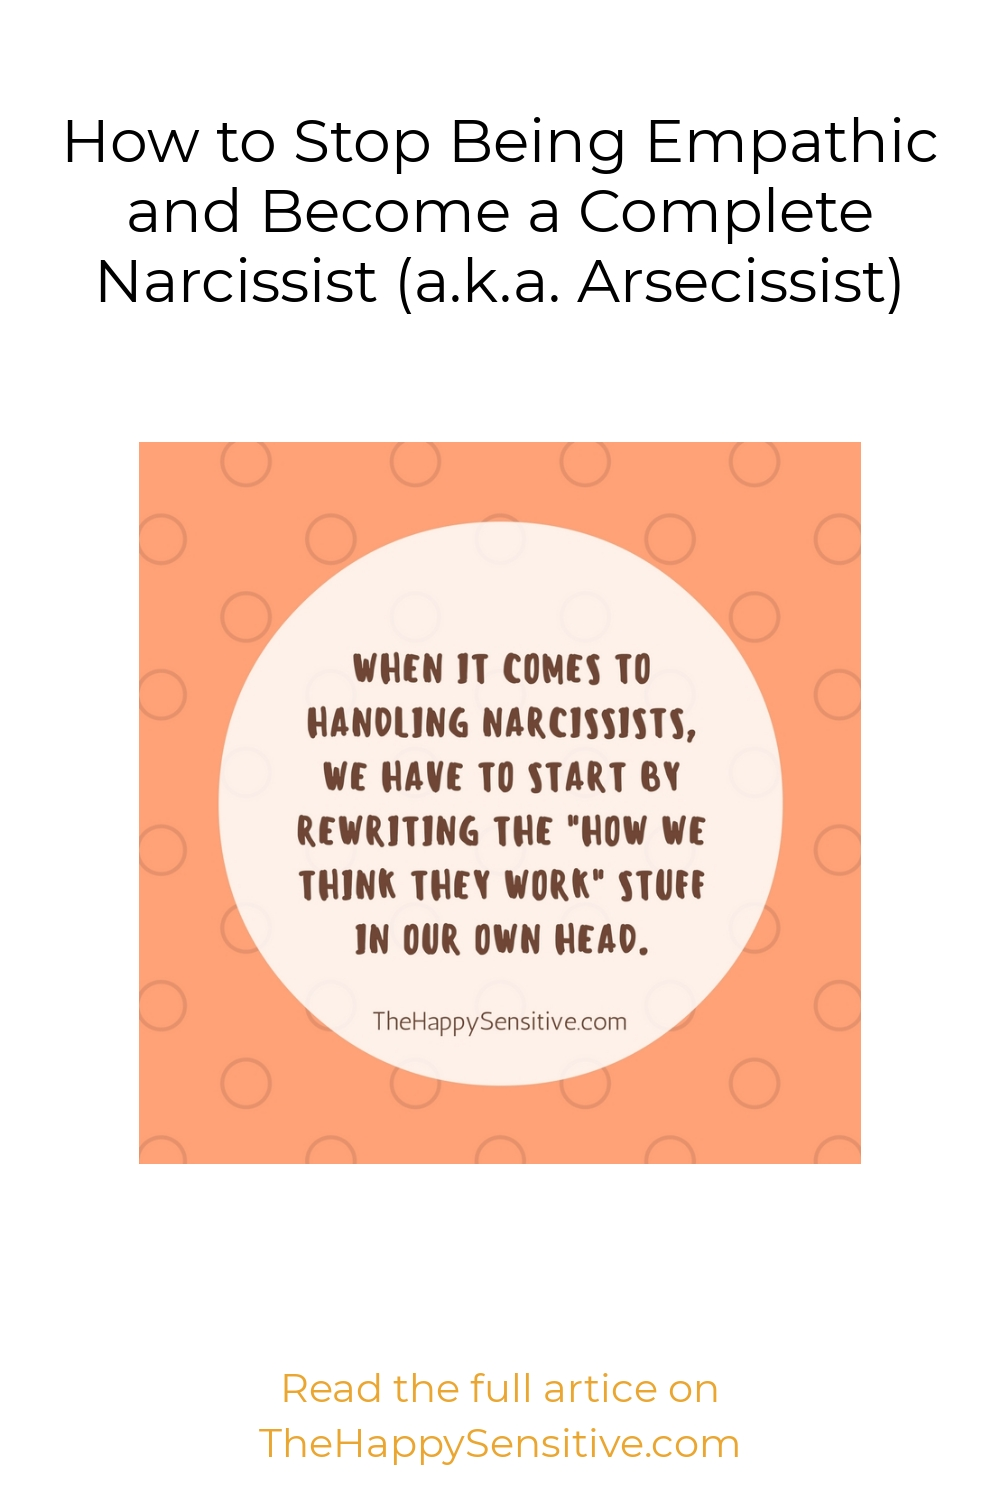 How to Stop Being Empathic and Become a Complete Narcissist (a.k.a. Arsecissist)